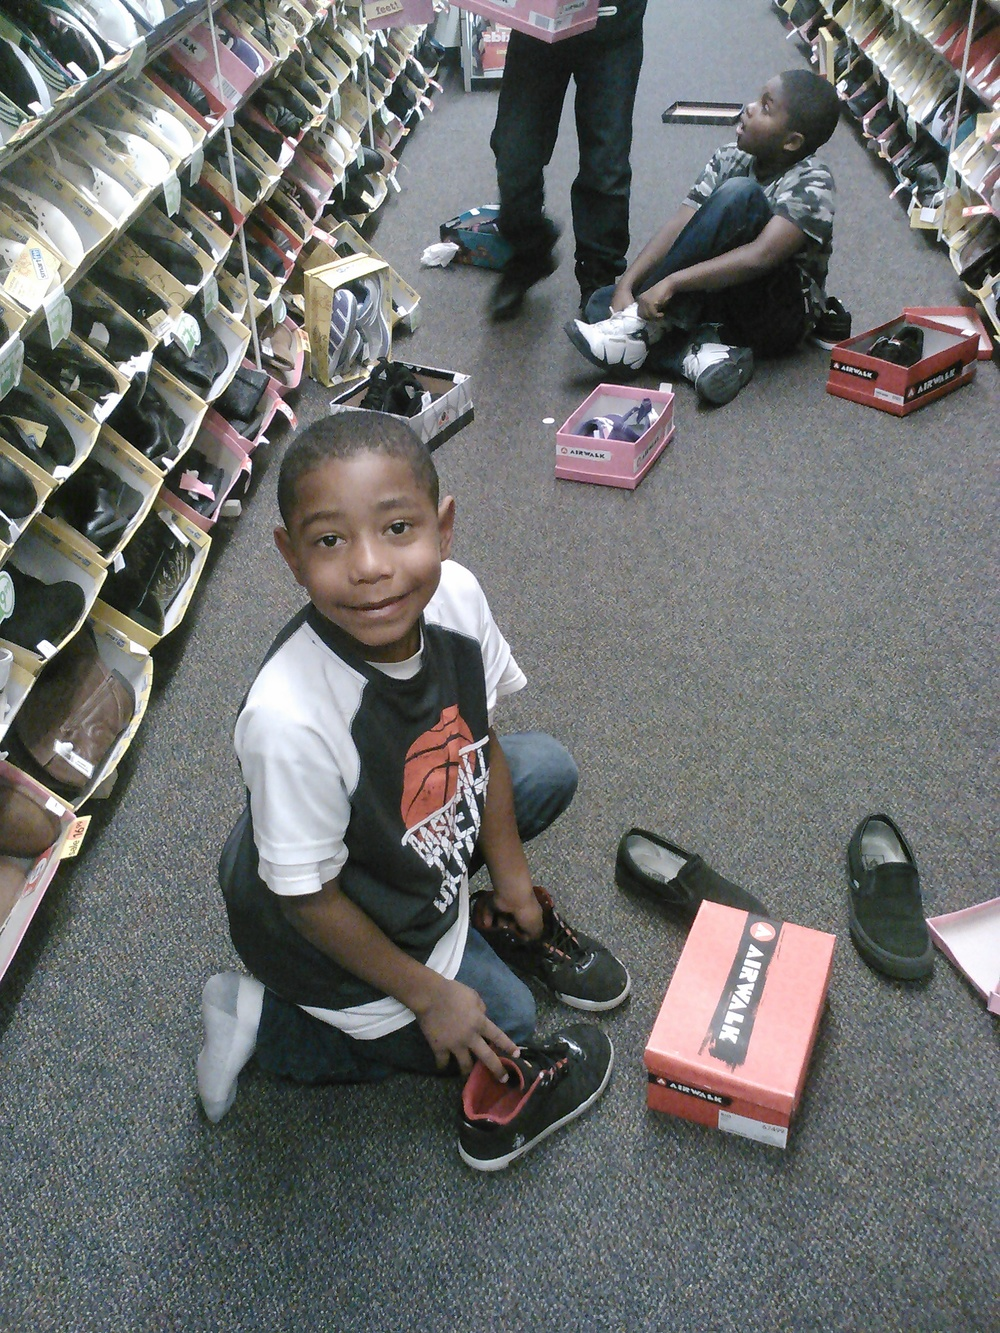 Meltzer payless Shoe shopping trip IMG070.jpg